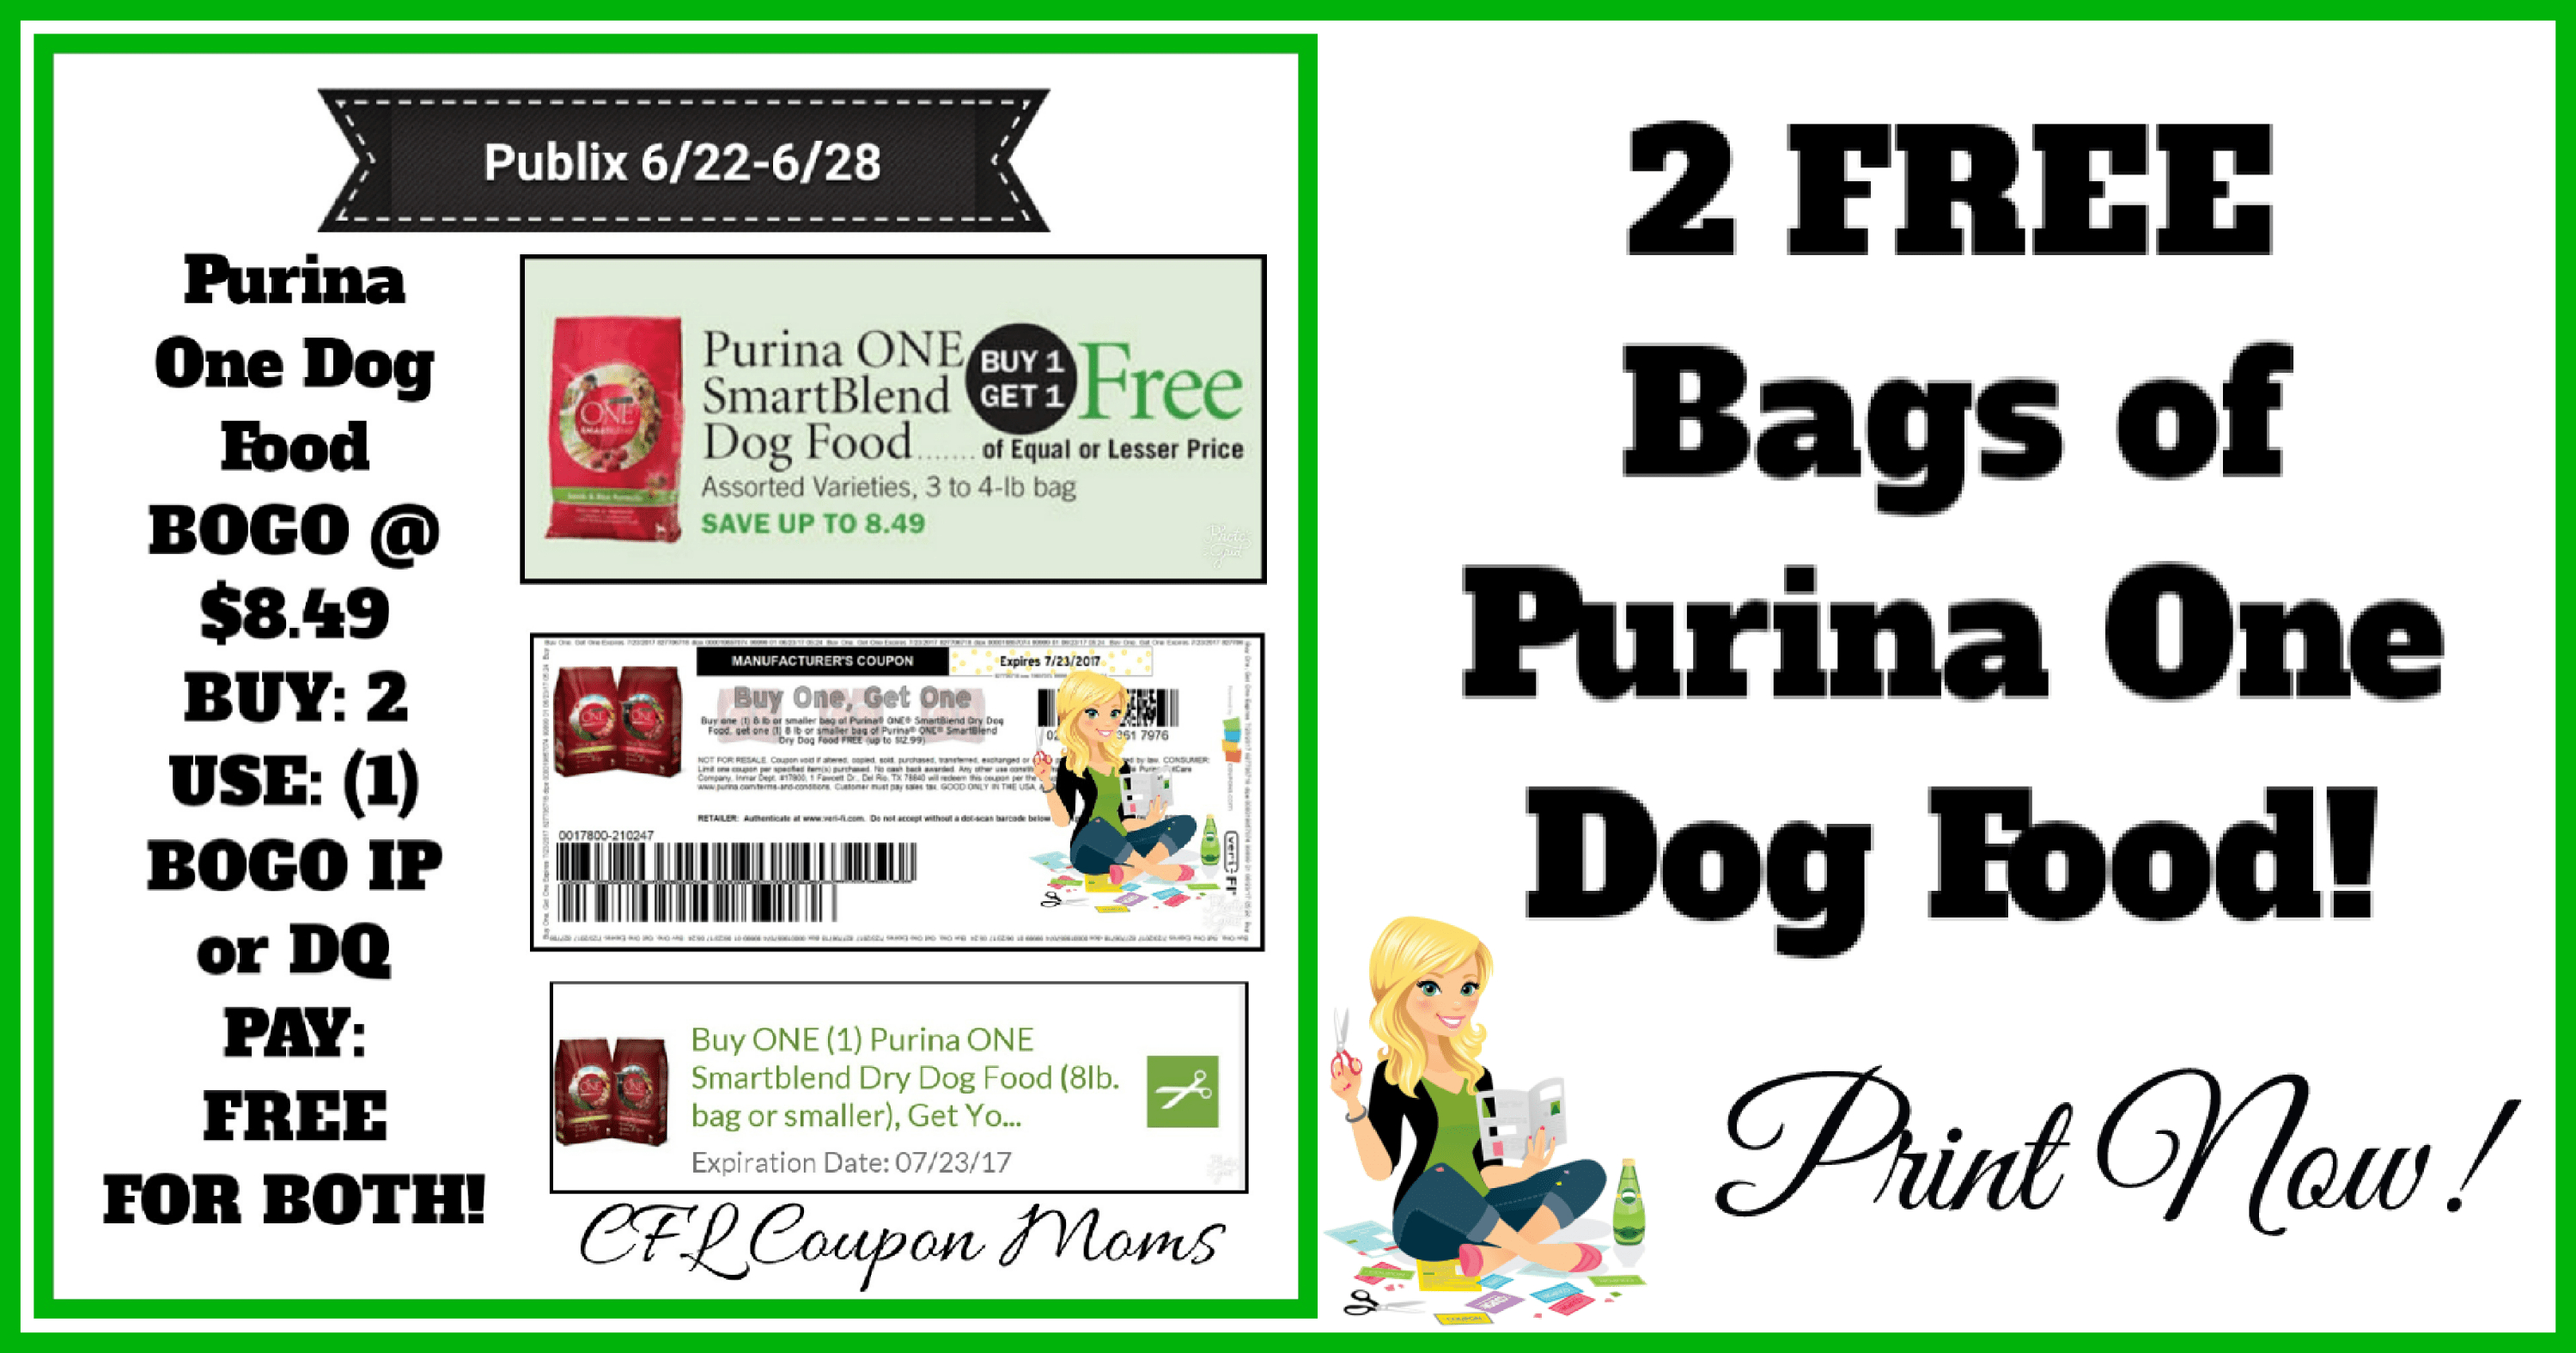 🐕publix🐕 Two (2) Free Bags Of Purina One Dog Food ~ 6/22-6/28 - Free Printable Coupons For Purina One Dog Food